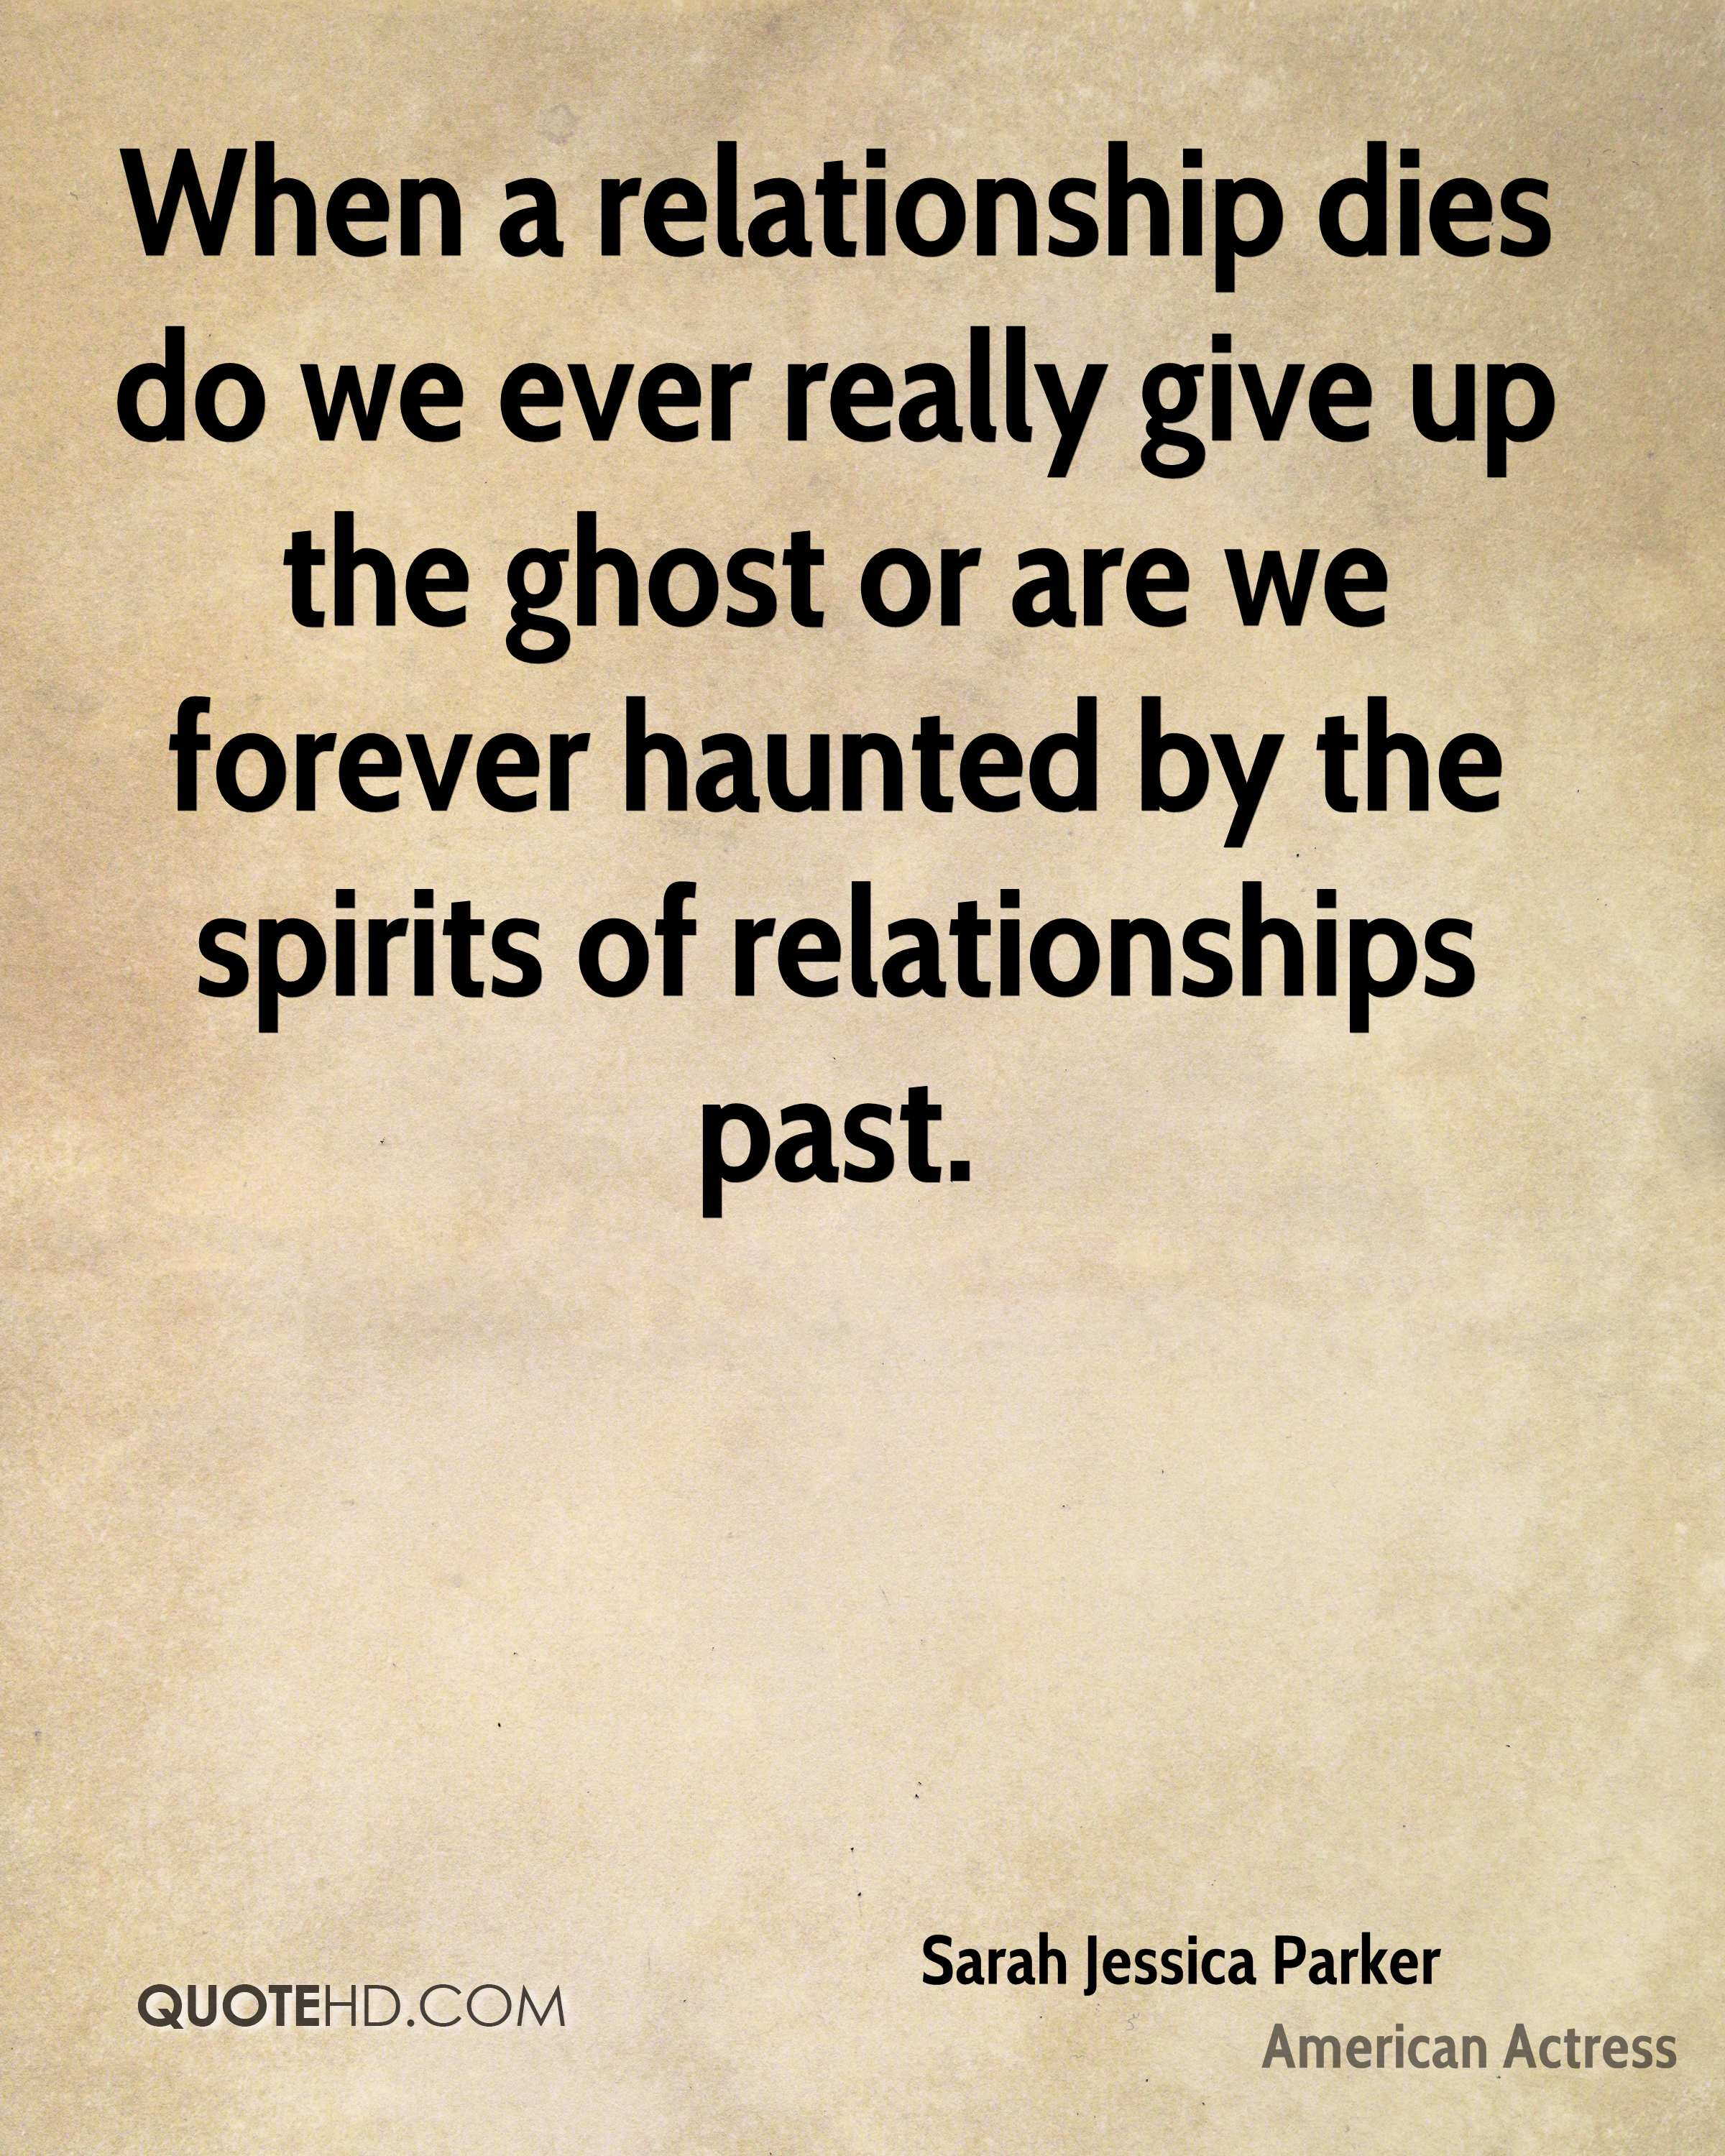 When a relationship dies do we ever really give up the ghost or are we forever haunted by the spirits of relationships past.